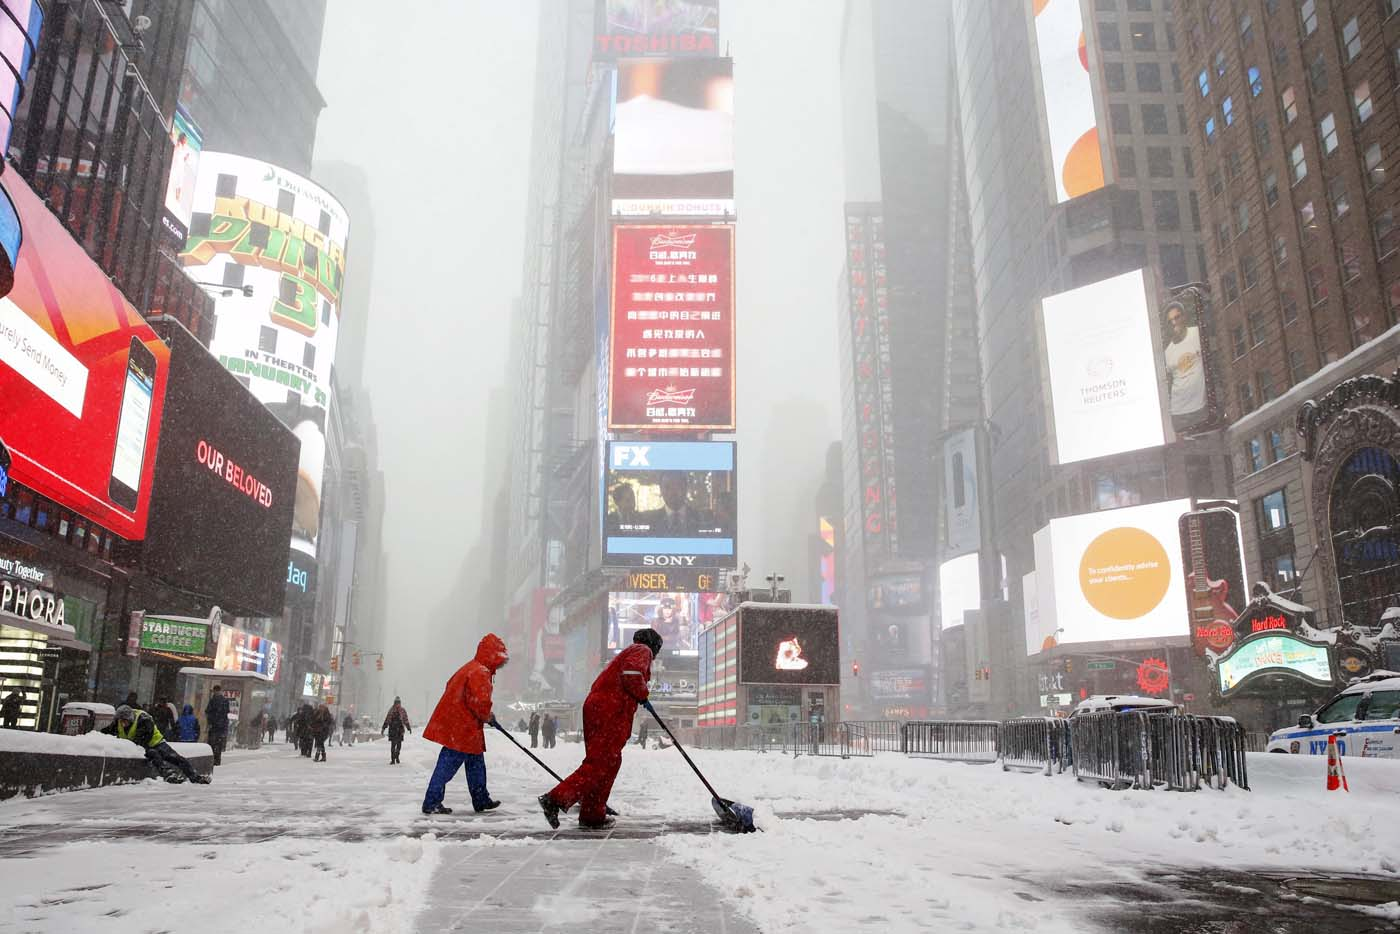 Winter storm in New York City, January 2016. Travel ban in effect.